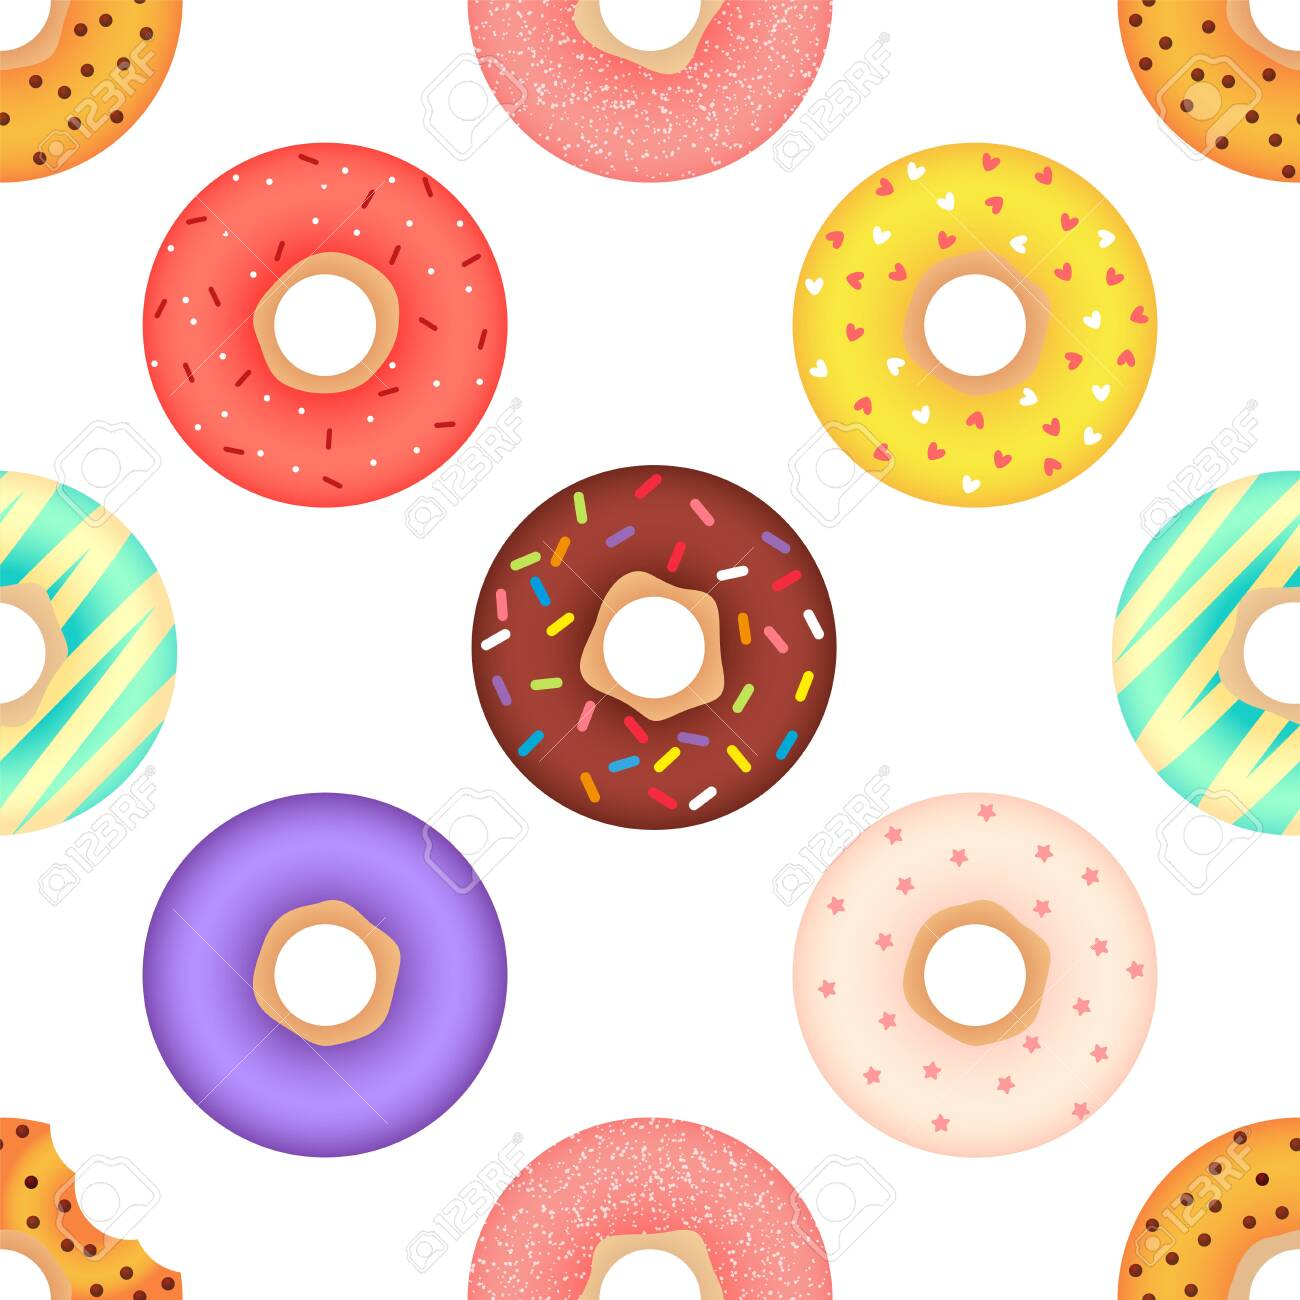 Colorful donuts. Seamless vector pattern isolated on white background - 145027552